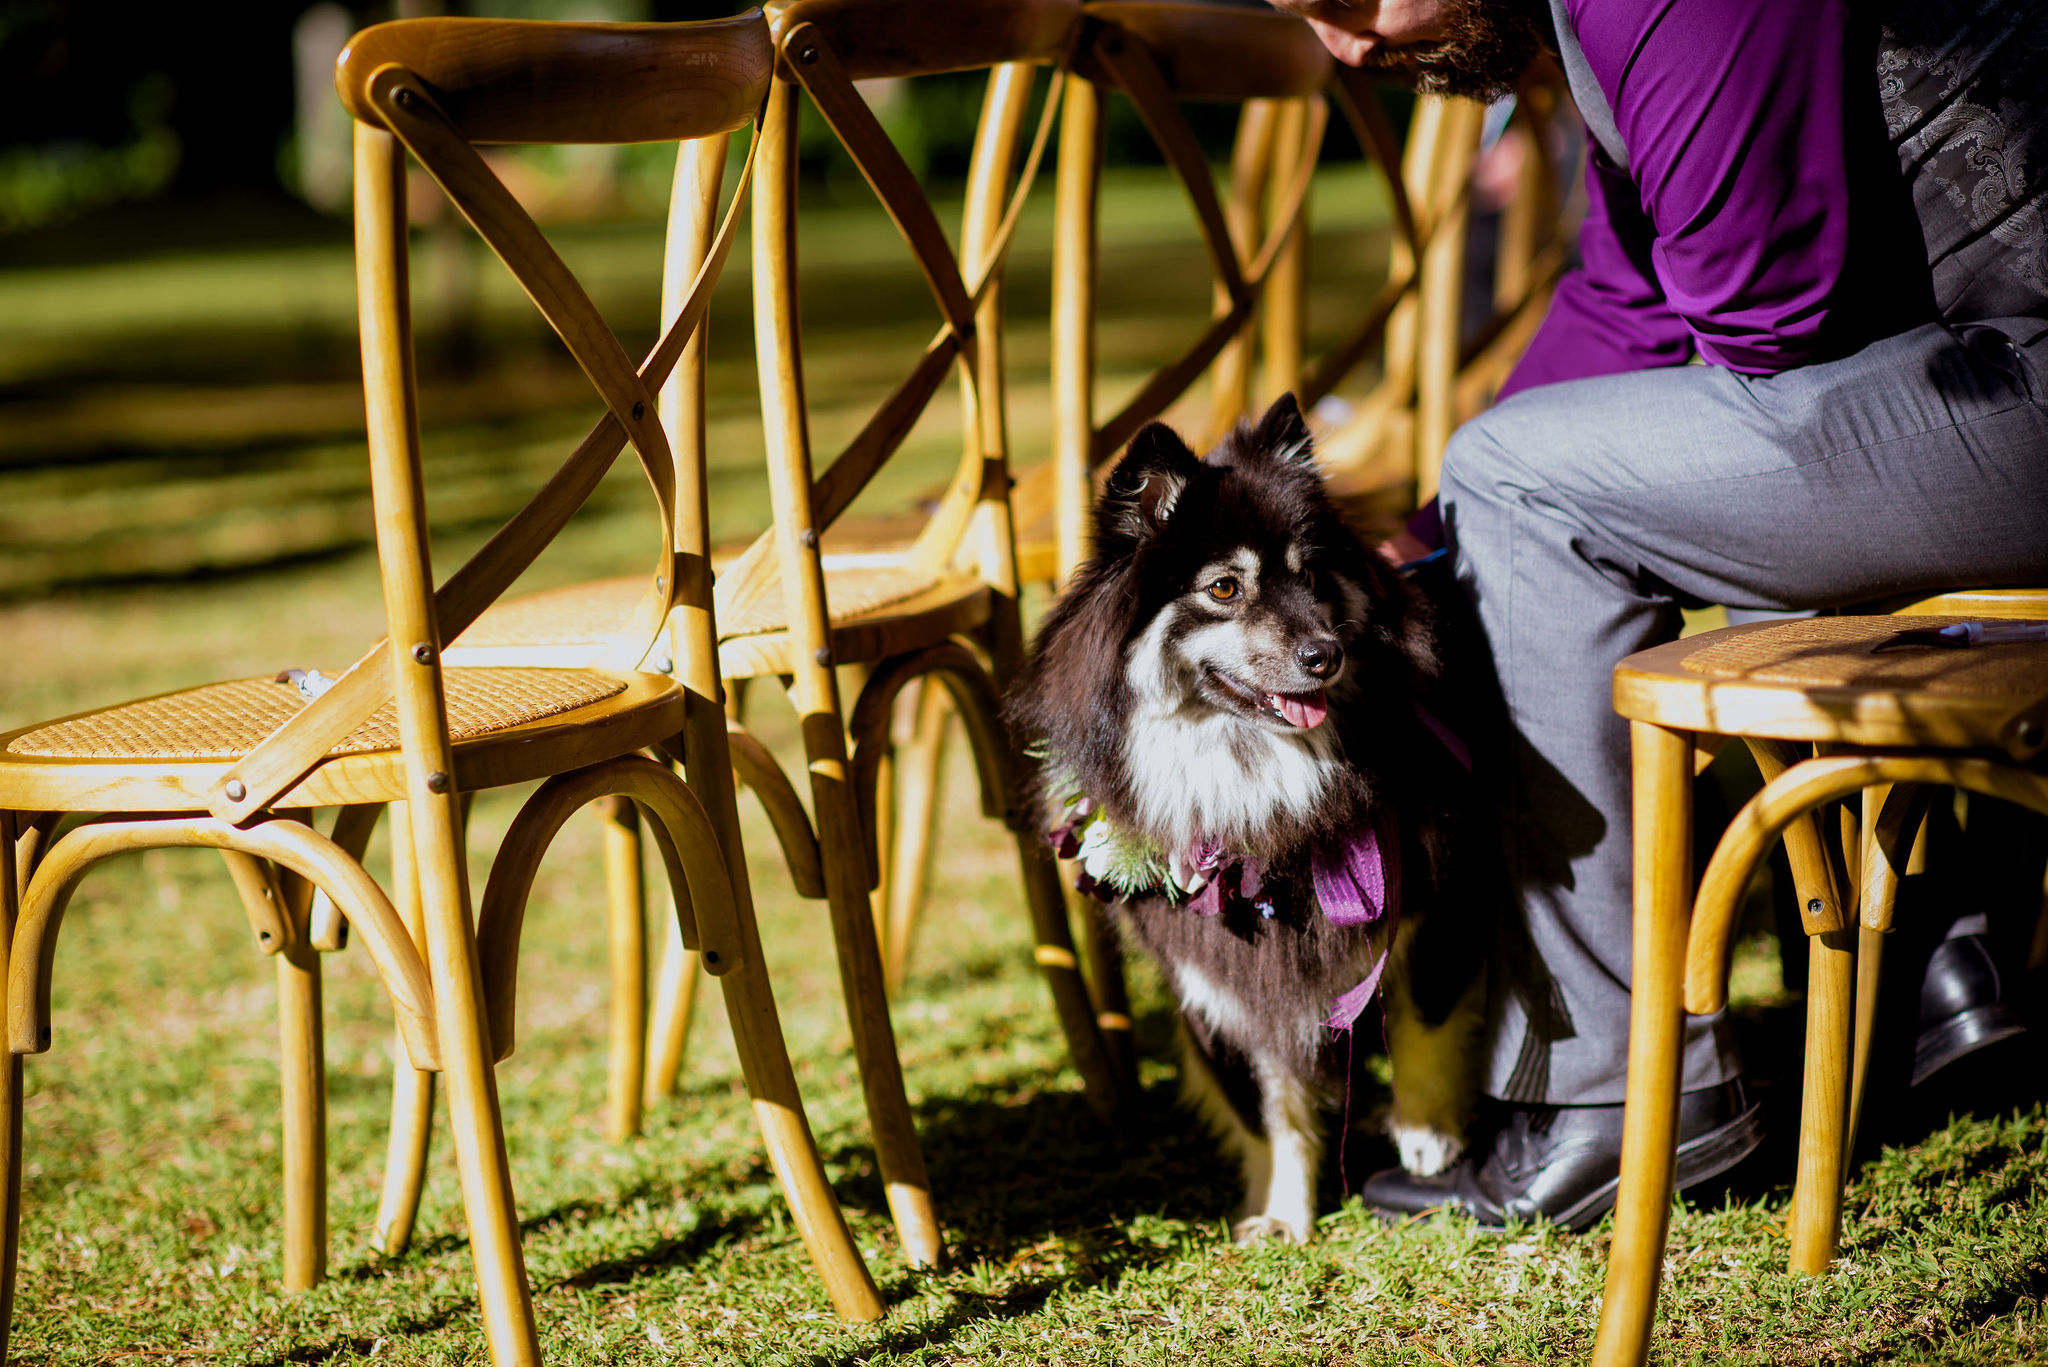 Black and white dog sitting with owner in between chairs